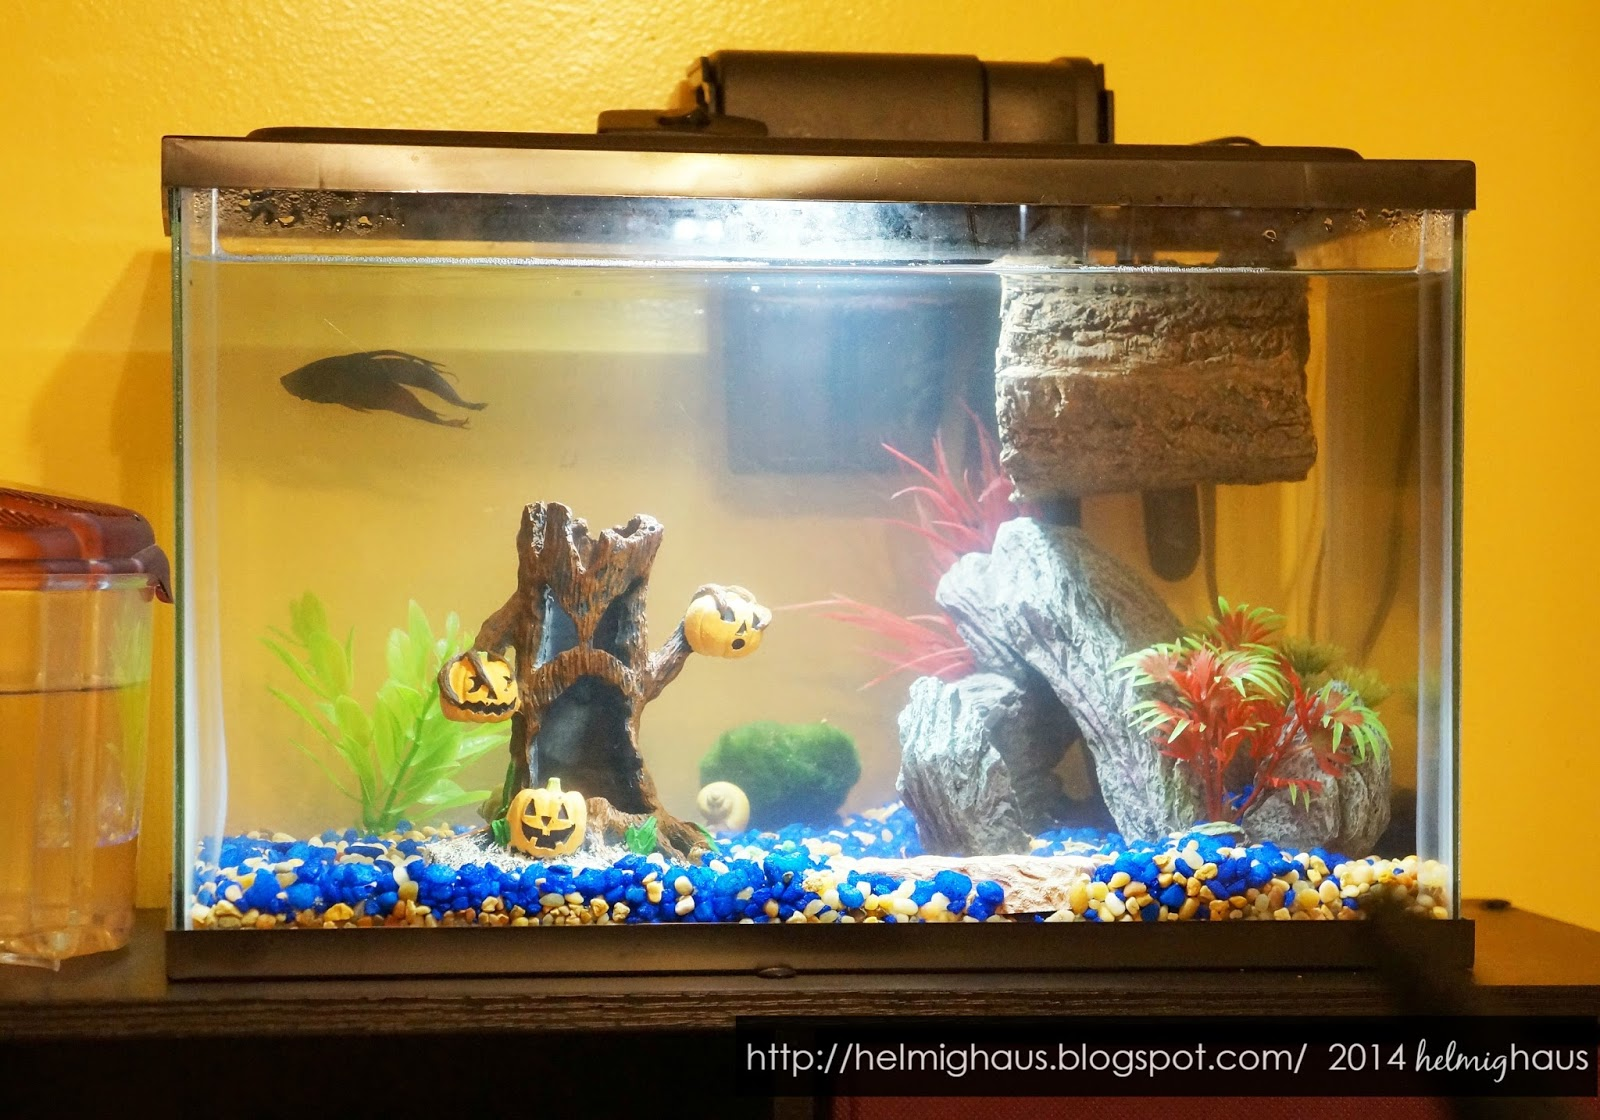 Fish in new aquarium - Front View Of Our 5 Gallon Aquarium With Halloween Decorations Via Helmig Haus